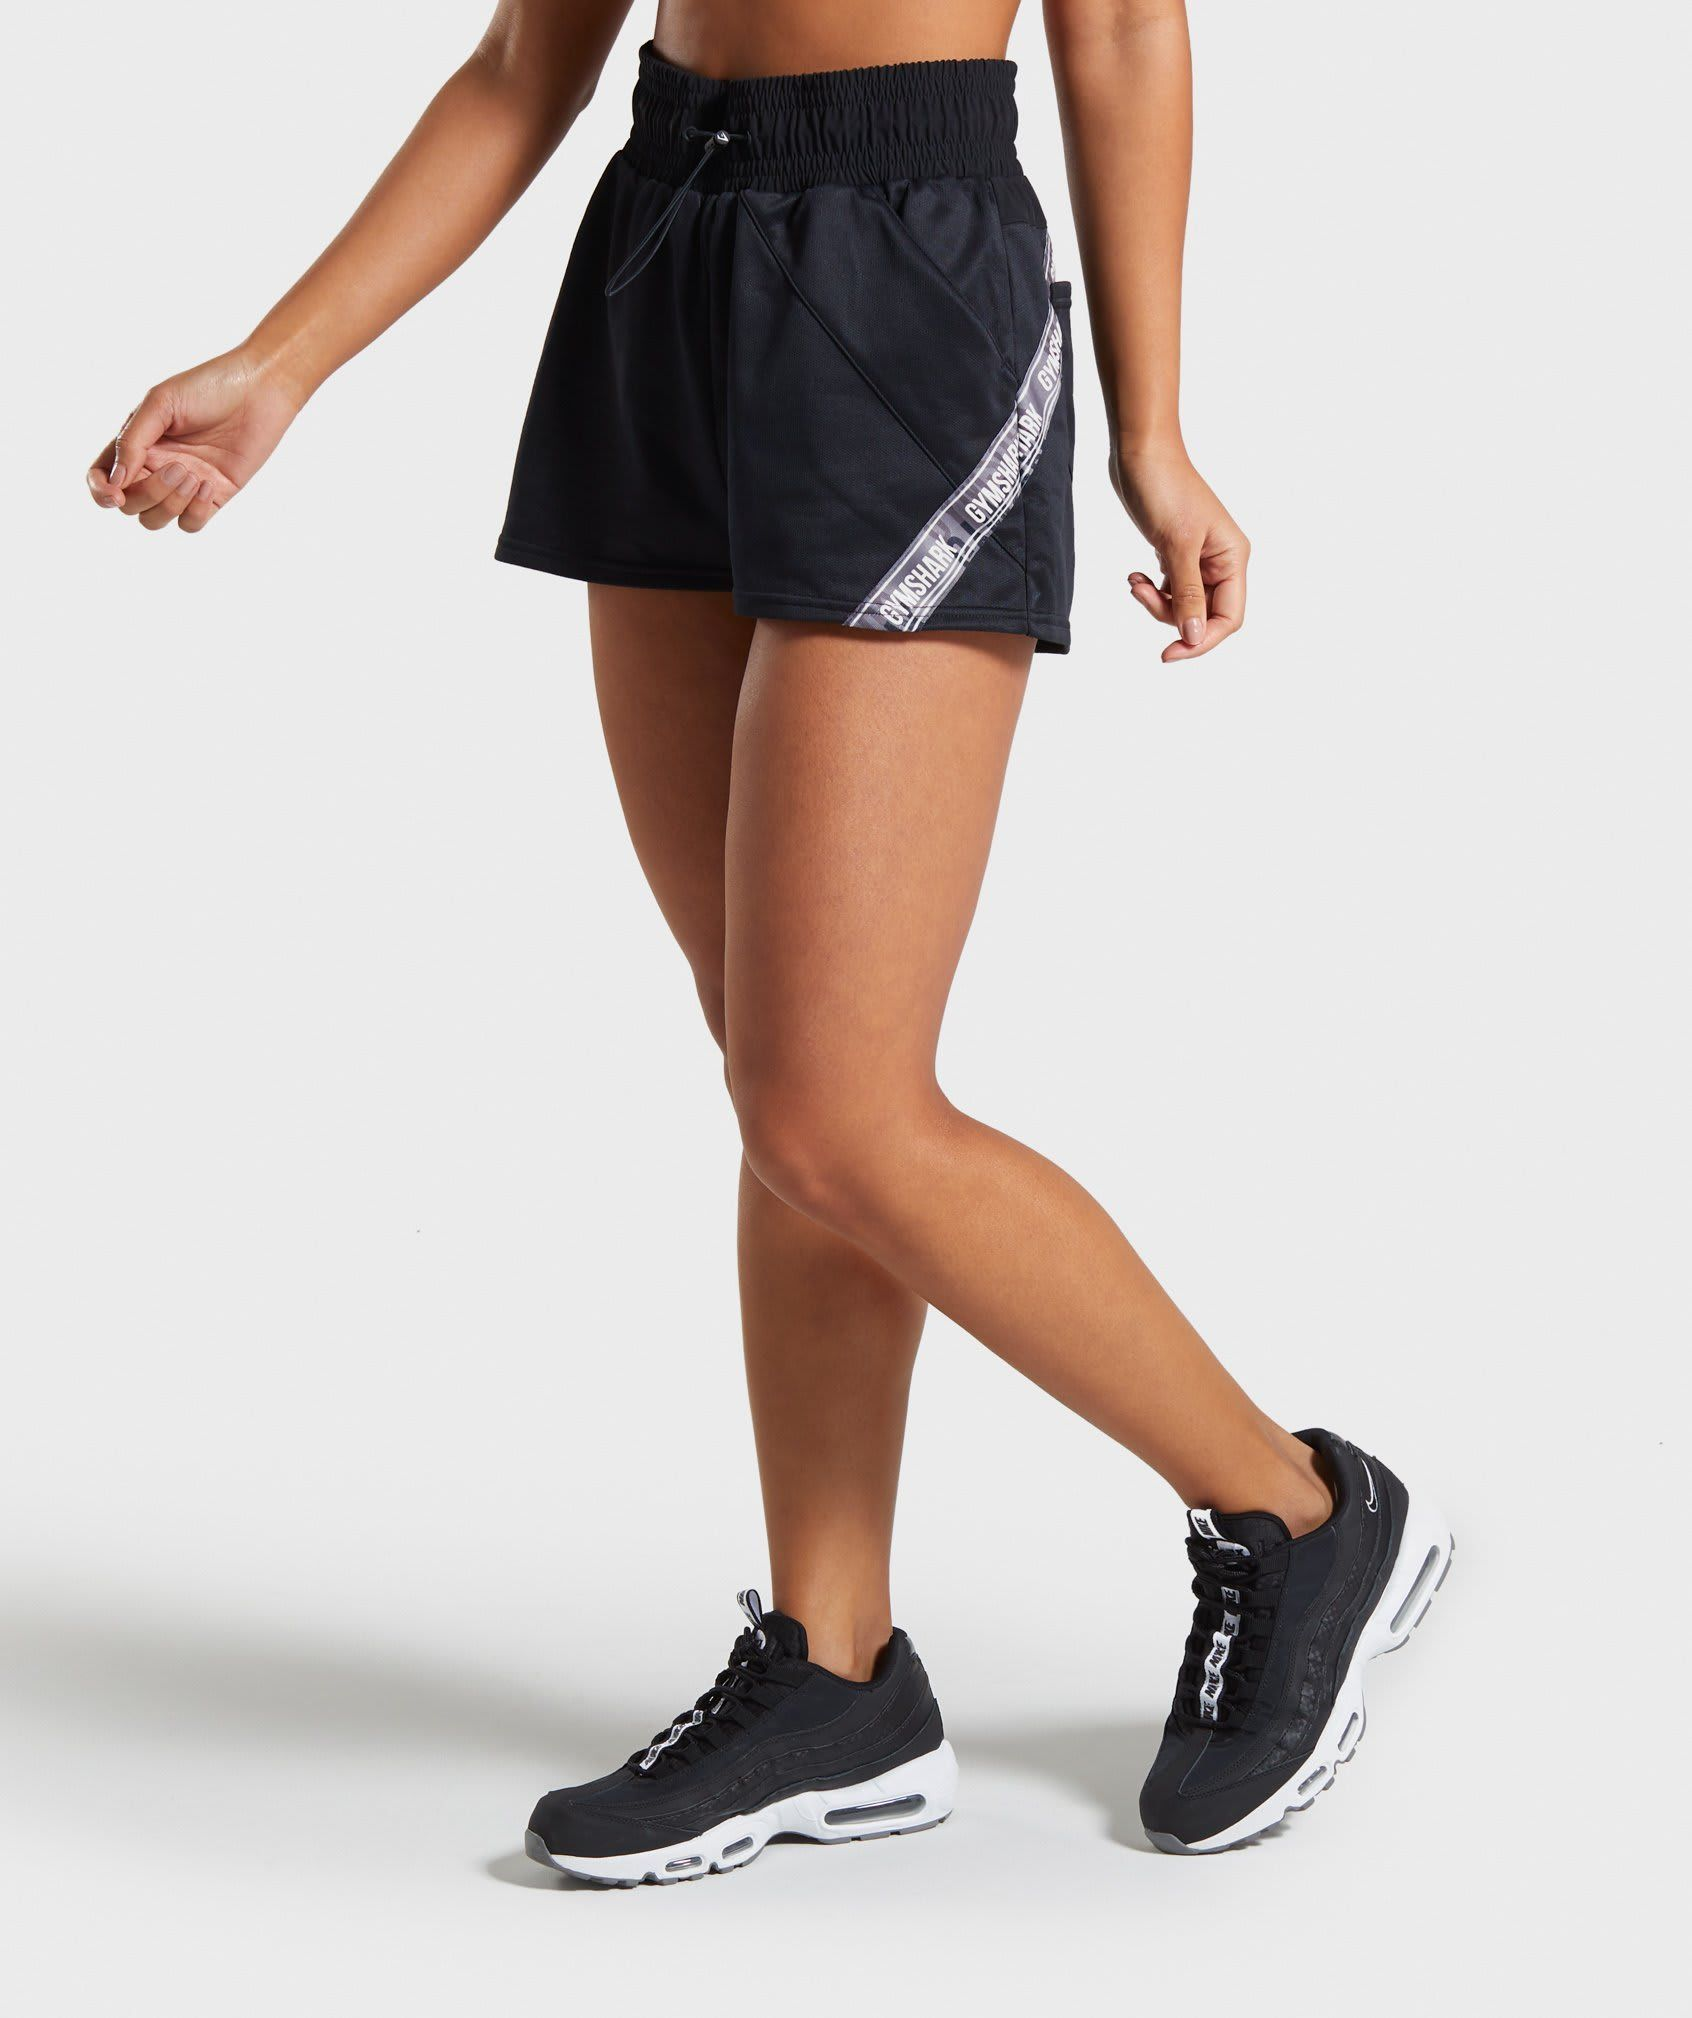 Gymshark Revival Shorts Black in 2020 (With images